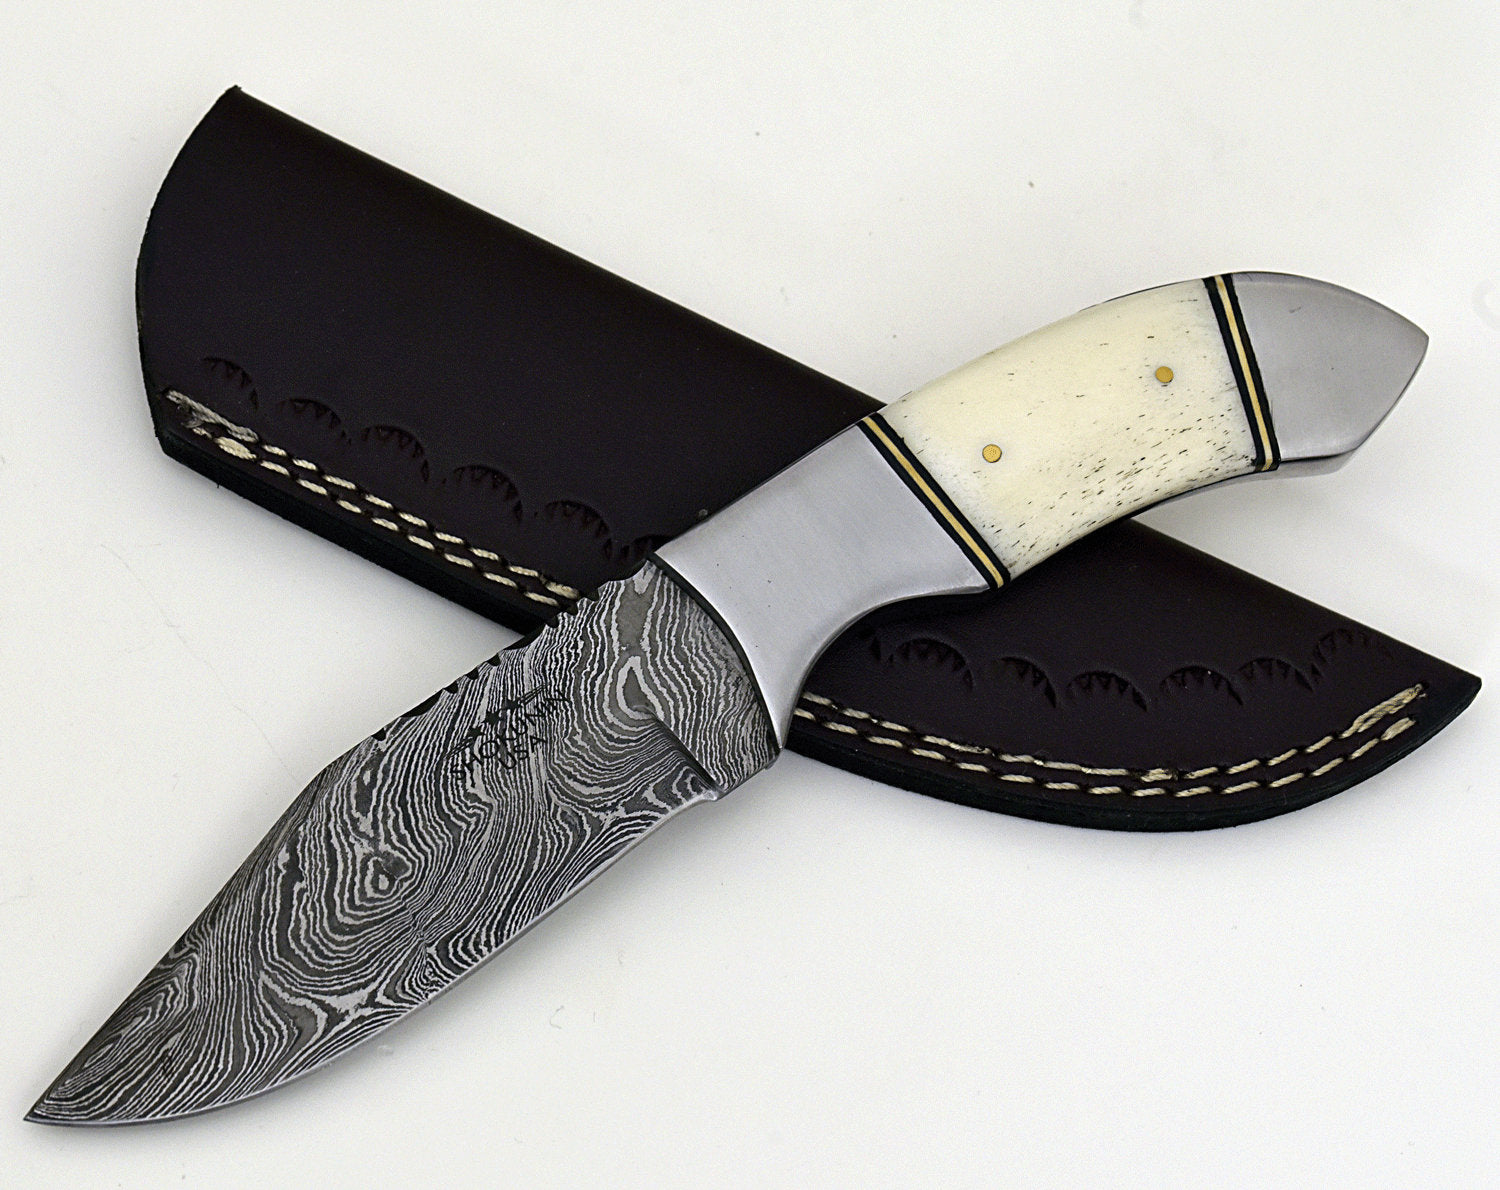 "Tomahawk damascus steel hunting knife, DAMASCUS KNIFE, CLIP point, new, 9"", tactical camping utility knife - SHOKUNIN USA"